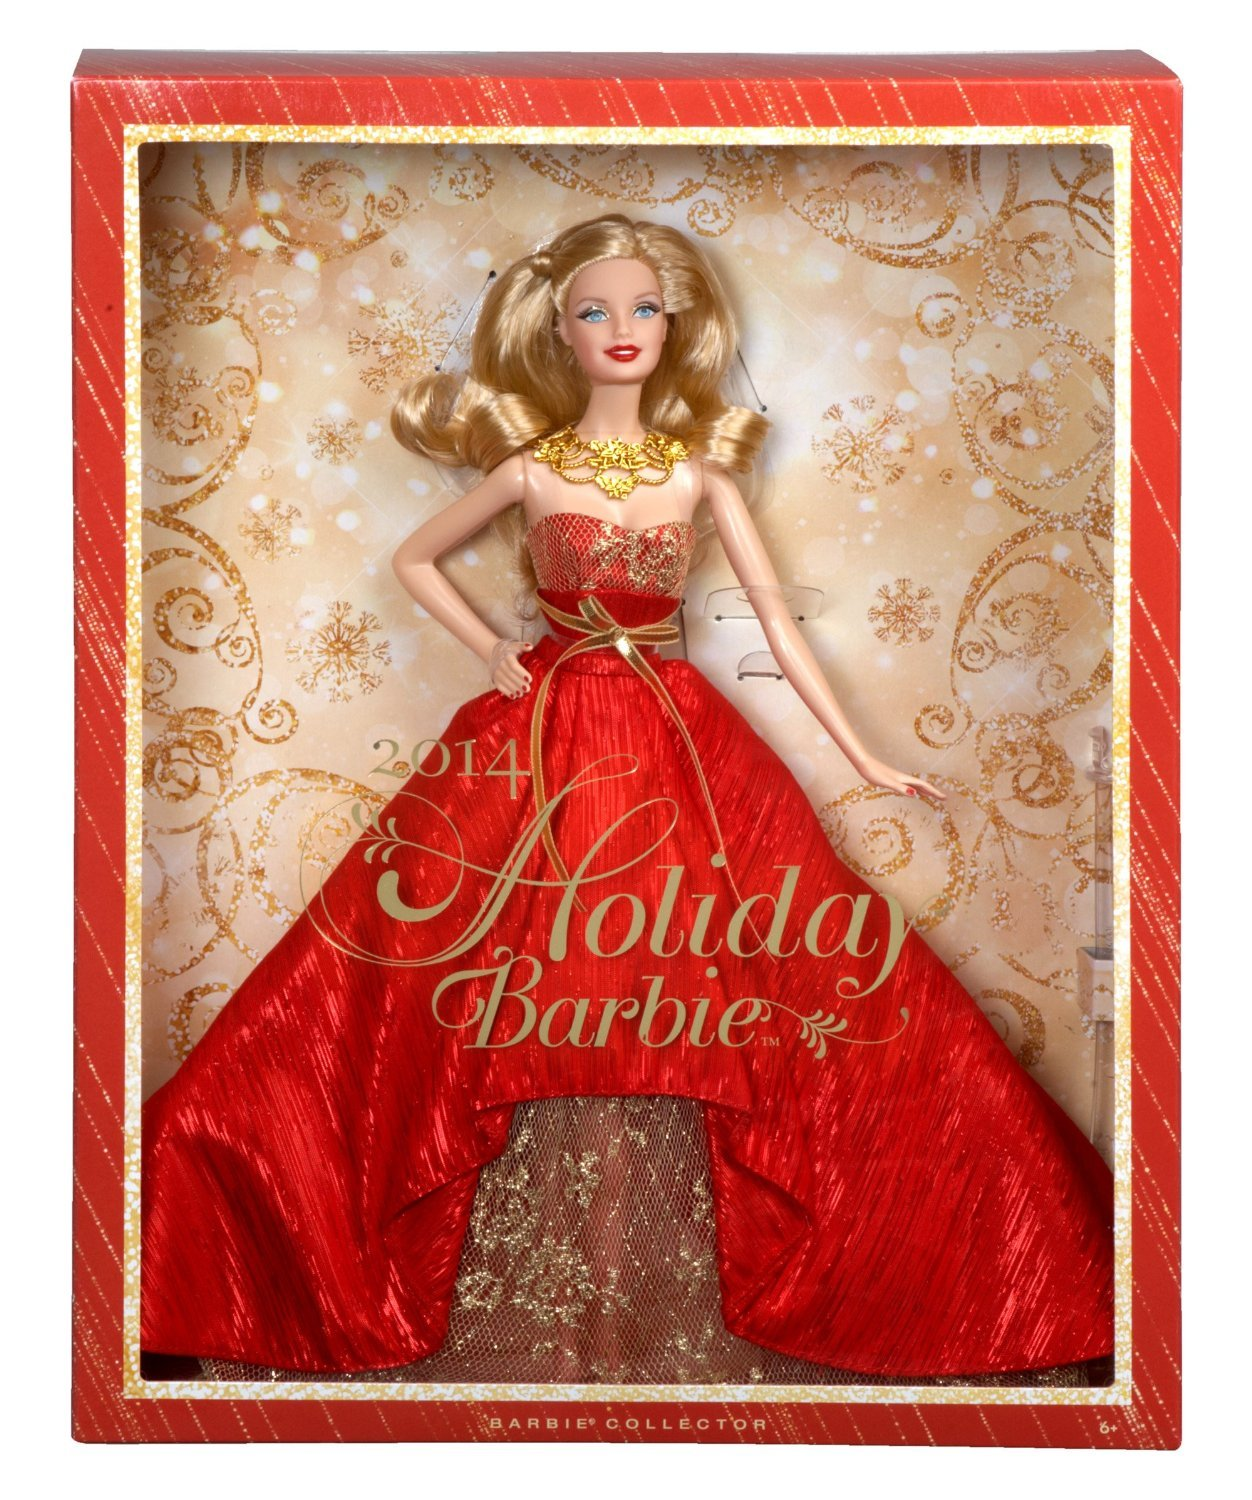 Image 1 of Holiday Barbie Doll 2014 in Posh Princess Red and Gold Satin Gown, Mattel